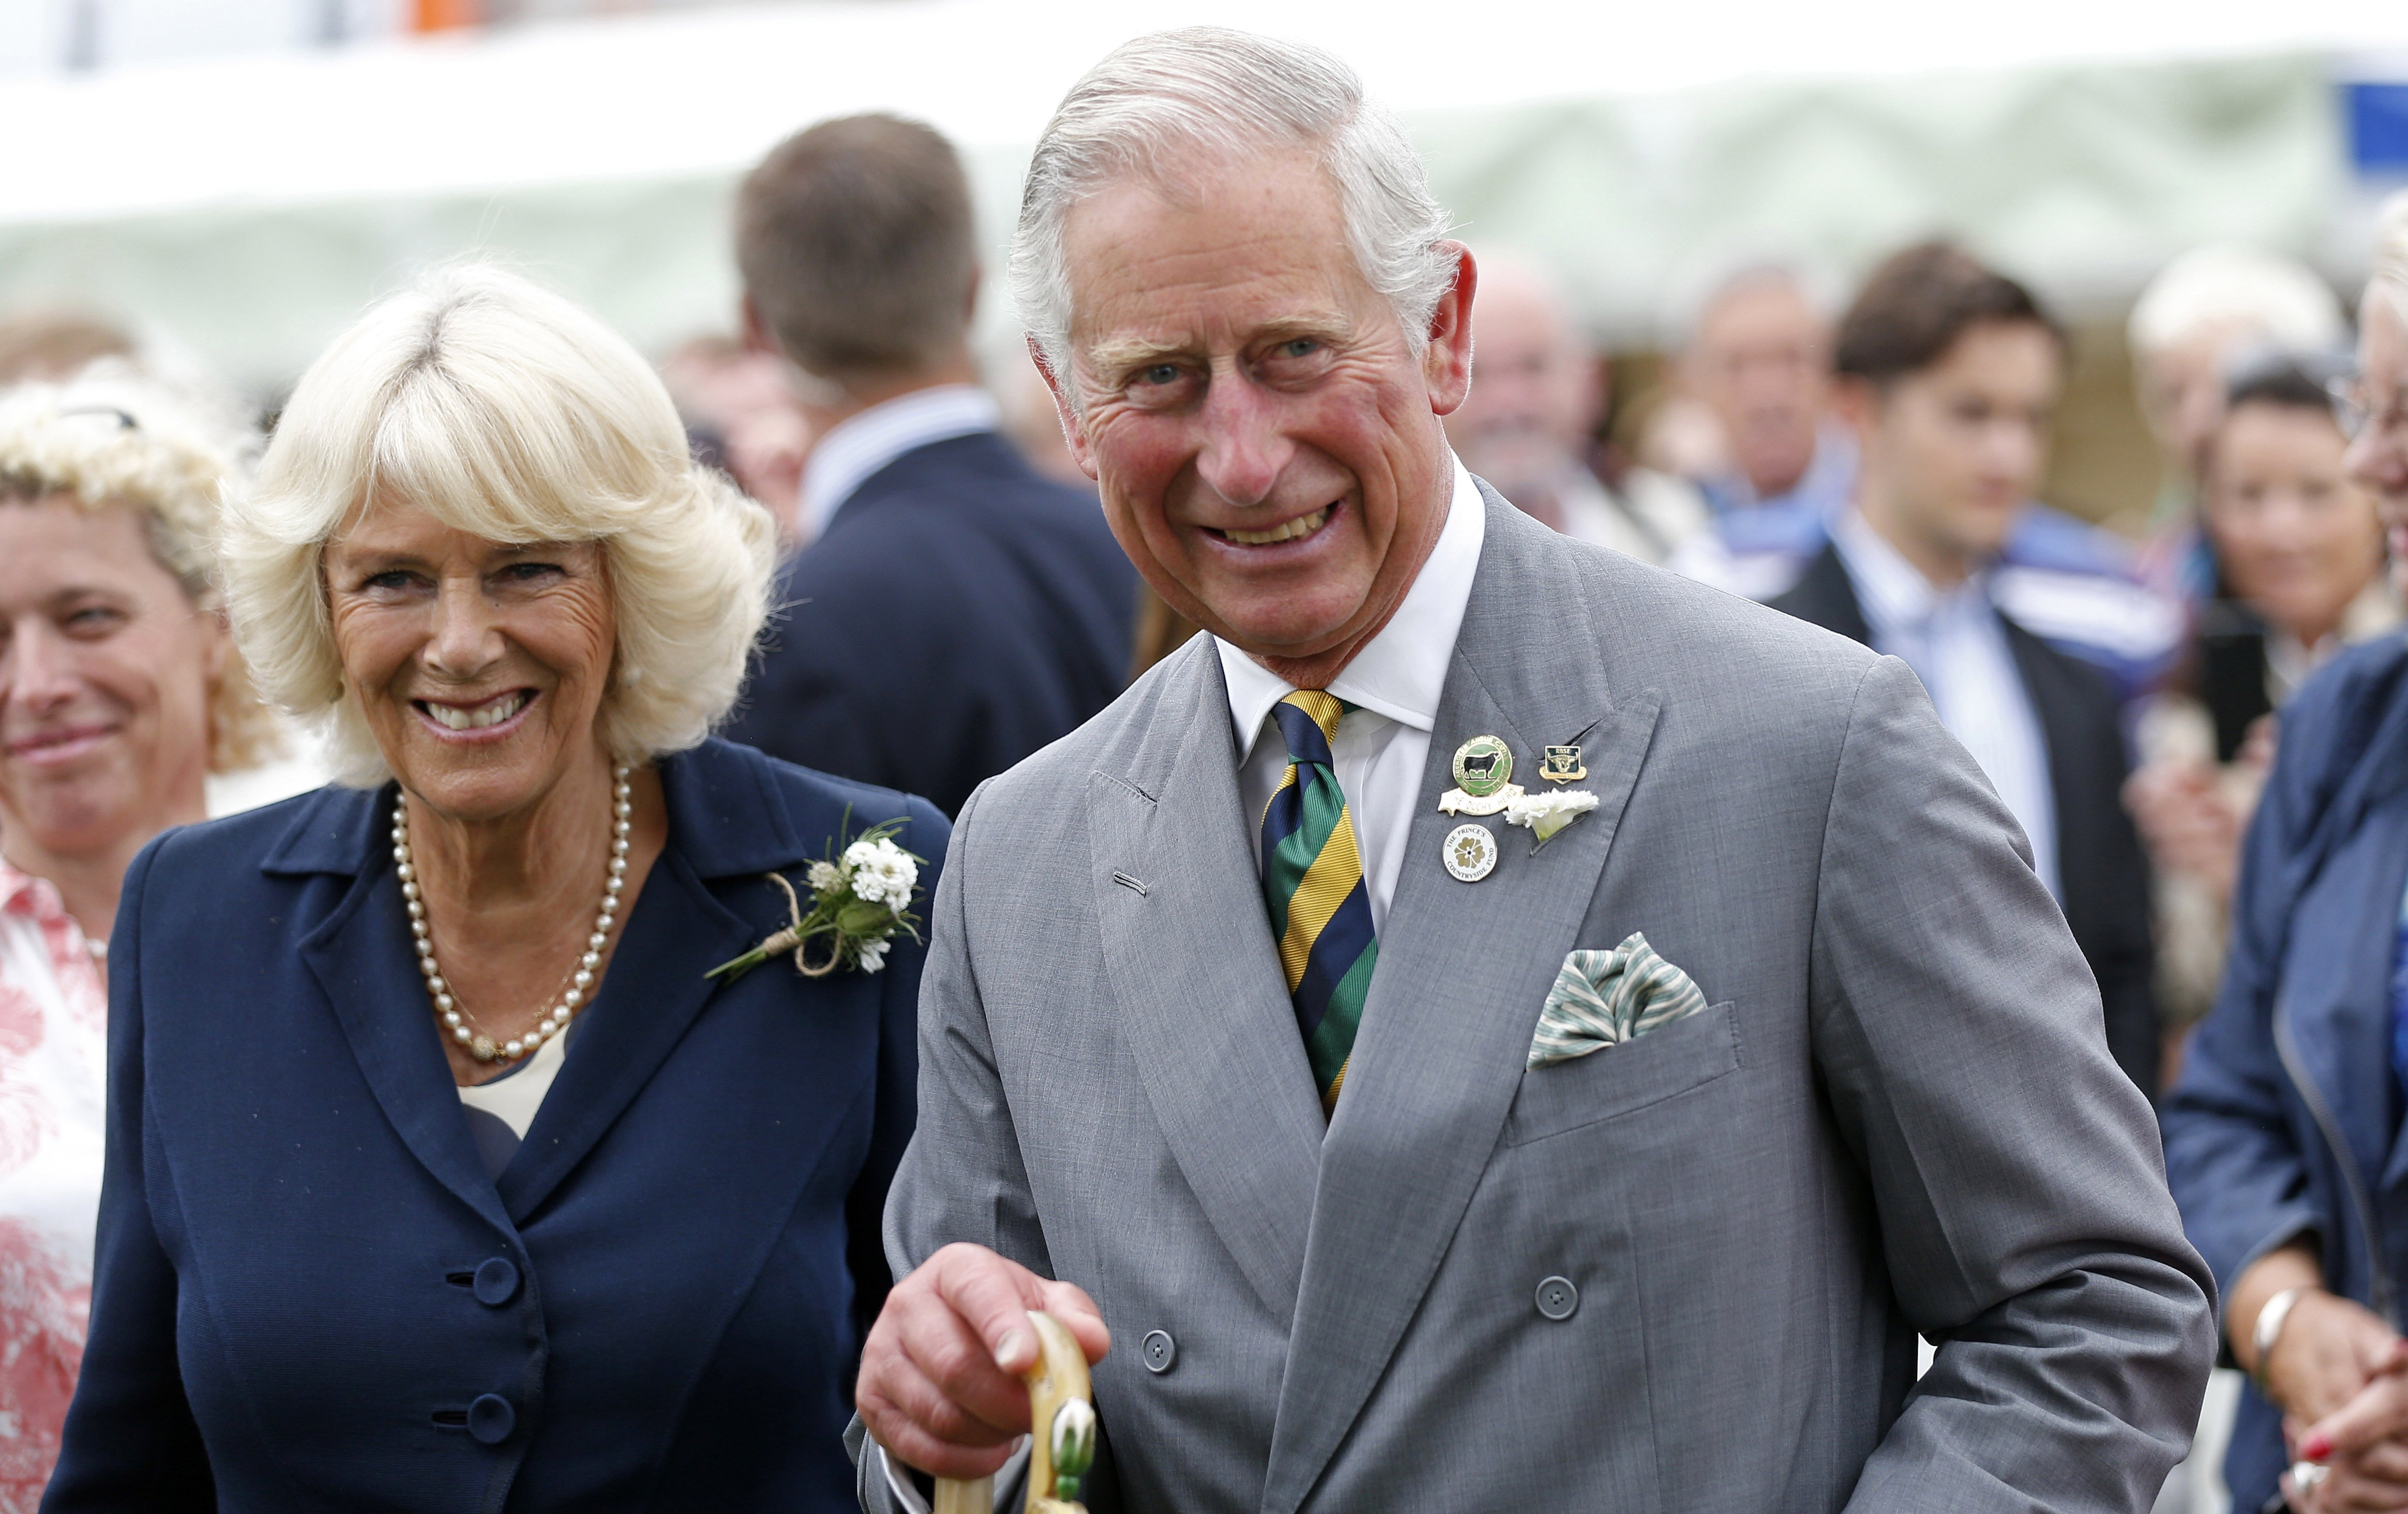 Camilla, Duchess of Cornwall and Prince Charles, Prince of Wales attend The Great Yorkshire Show on July 14, 2015 | Photo: GettyImages